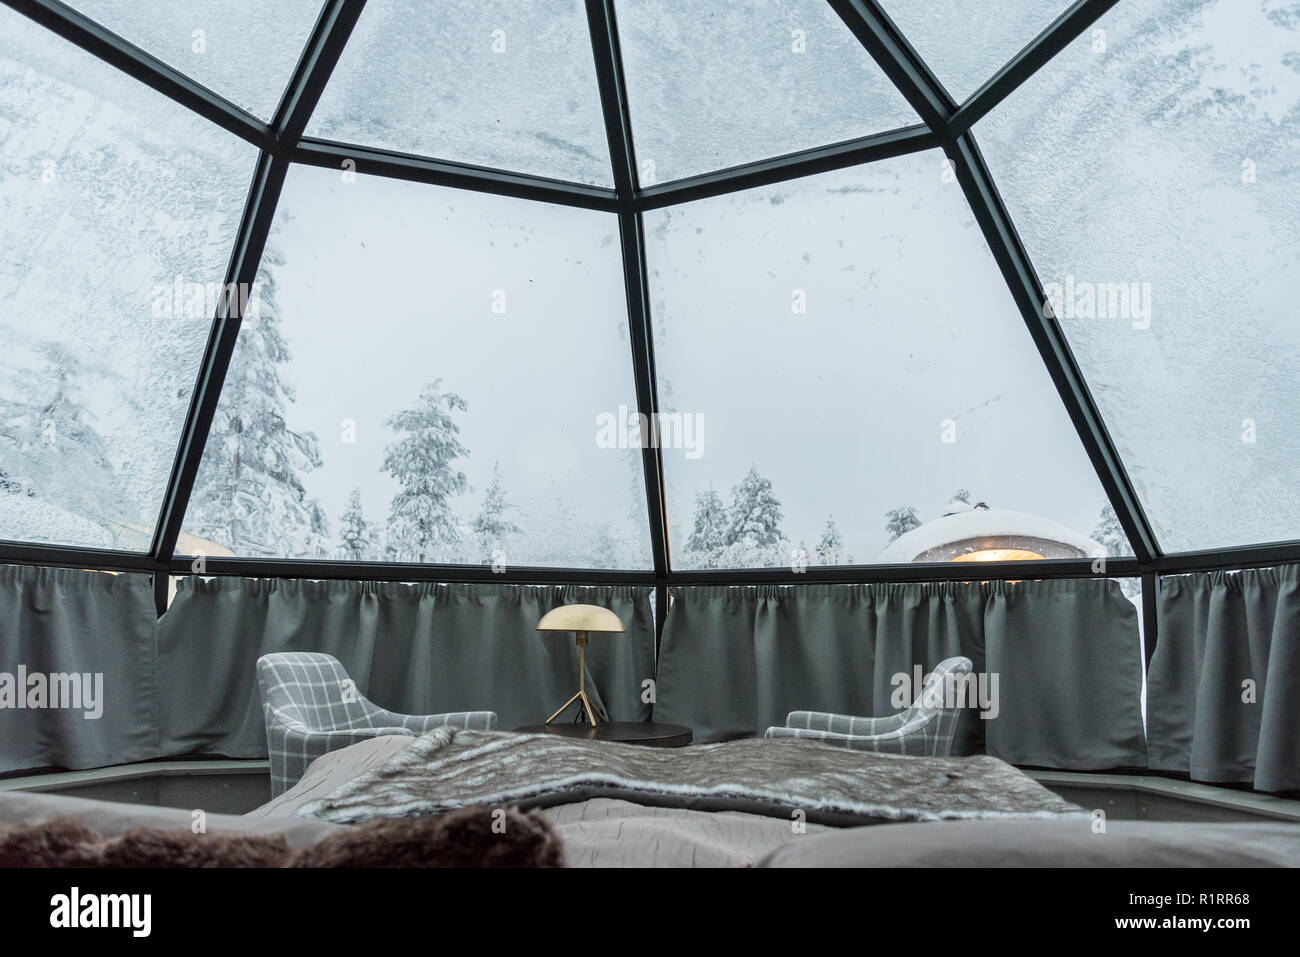 Glass igloo accommodation in Lapland near Sirkka, Finland - Stock Image